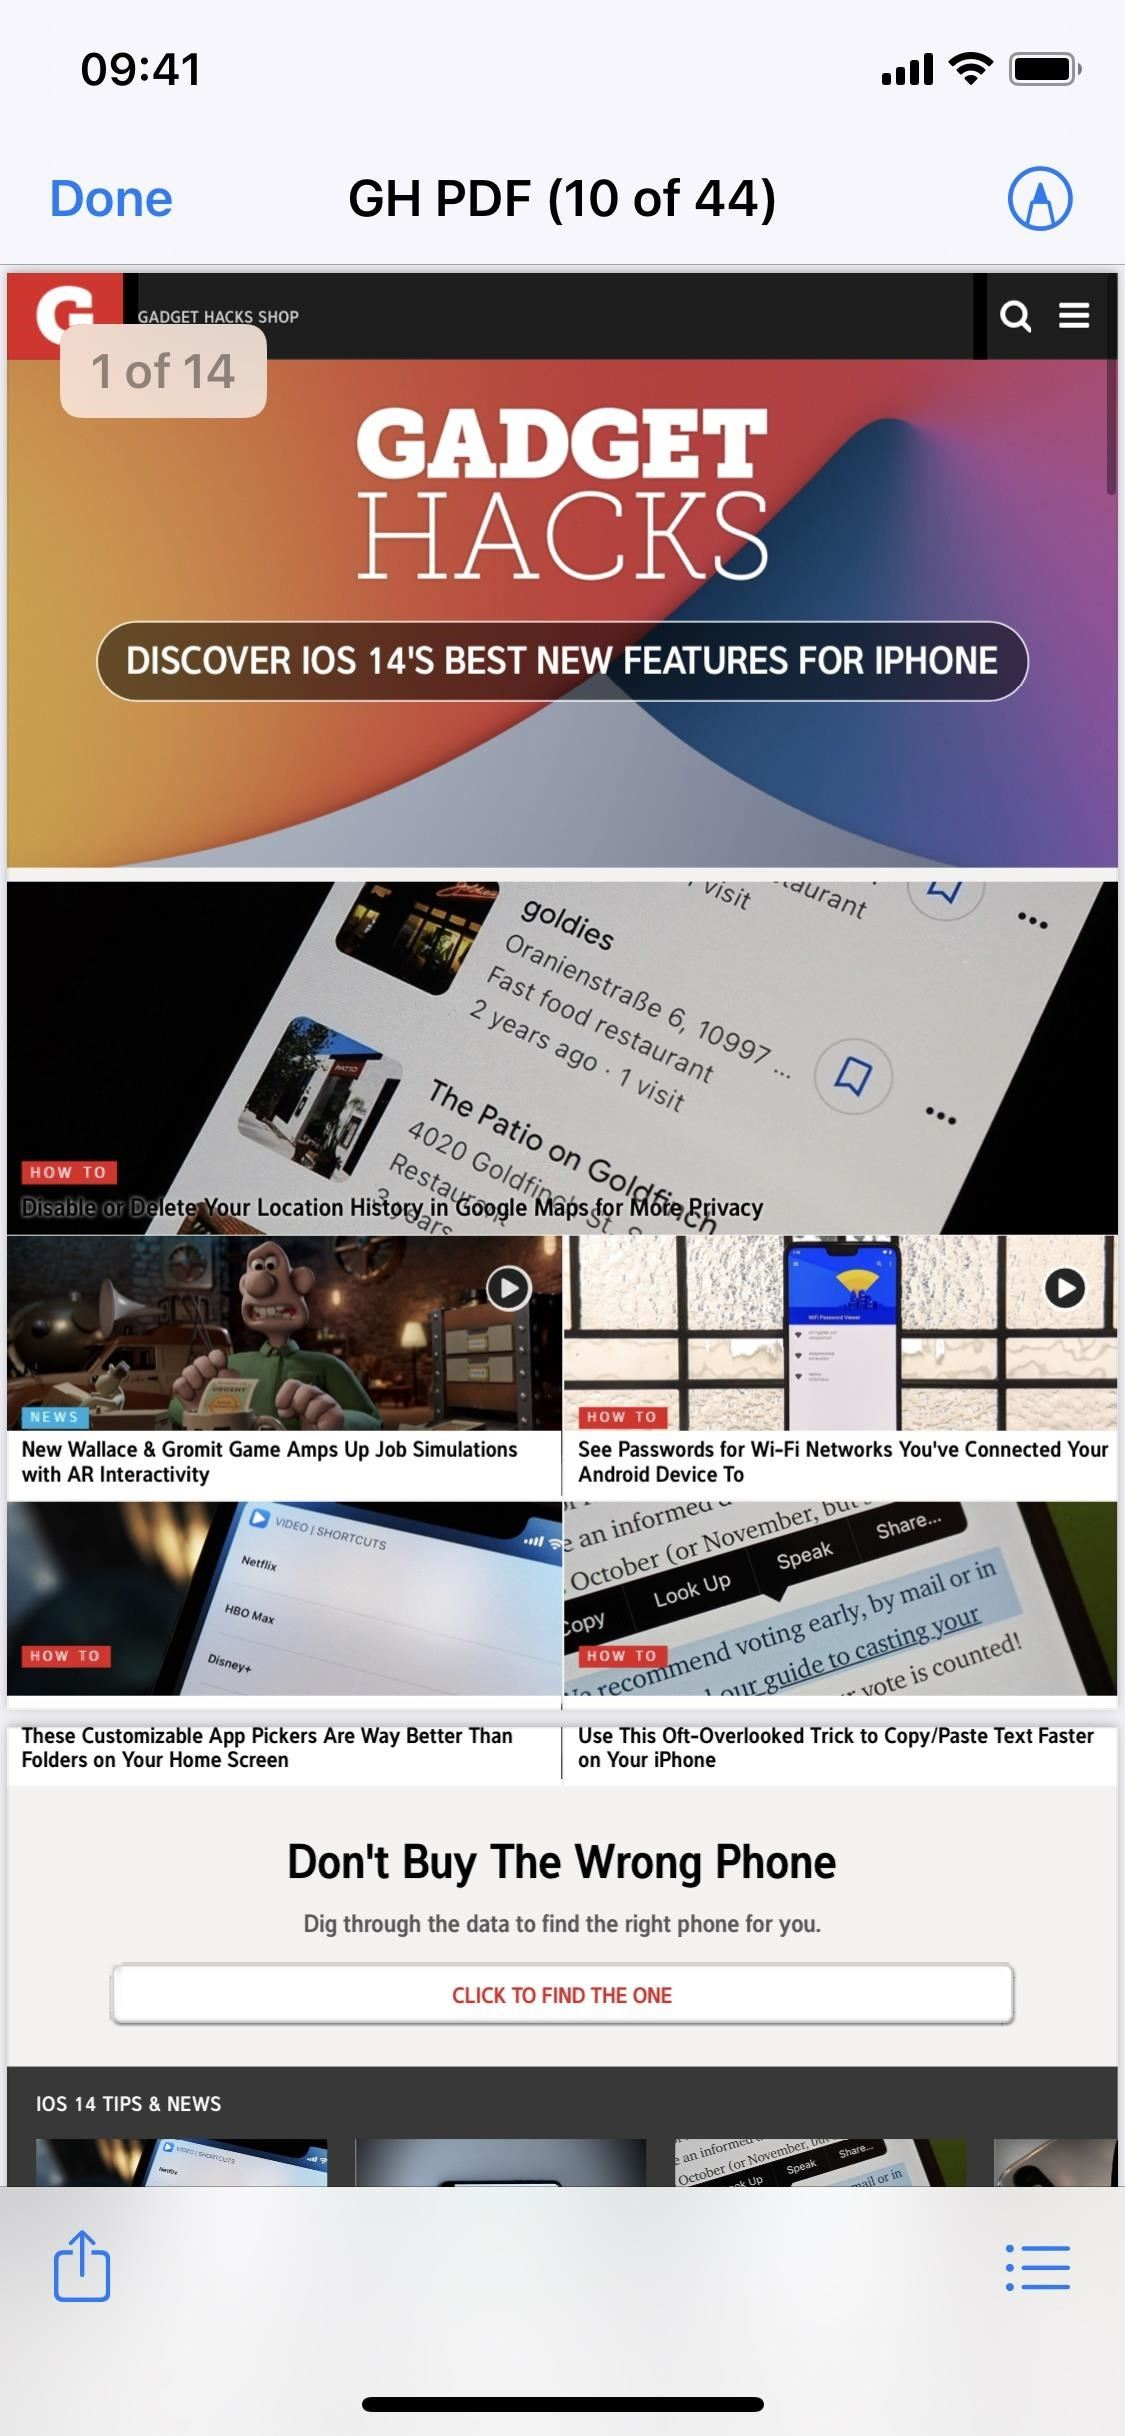 Improve Safari with a PDF Editor, URL Shortener, Bulk Image Saver & More Features on Your iPhone